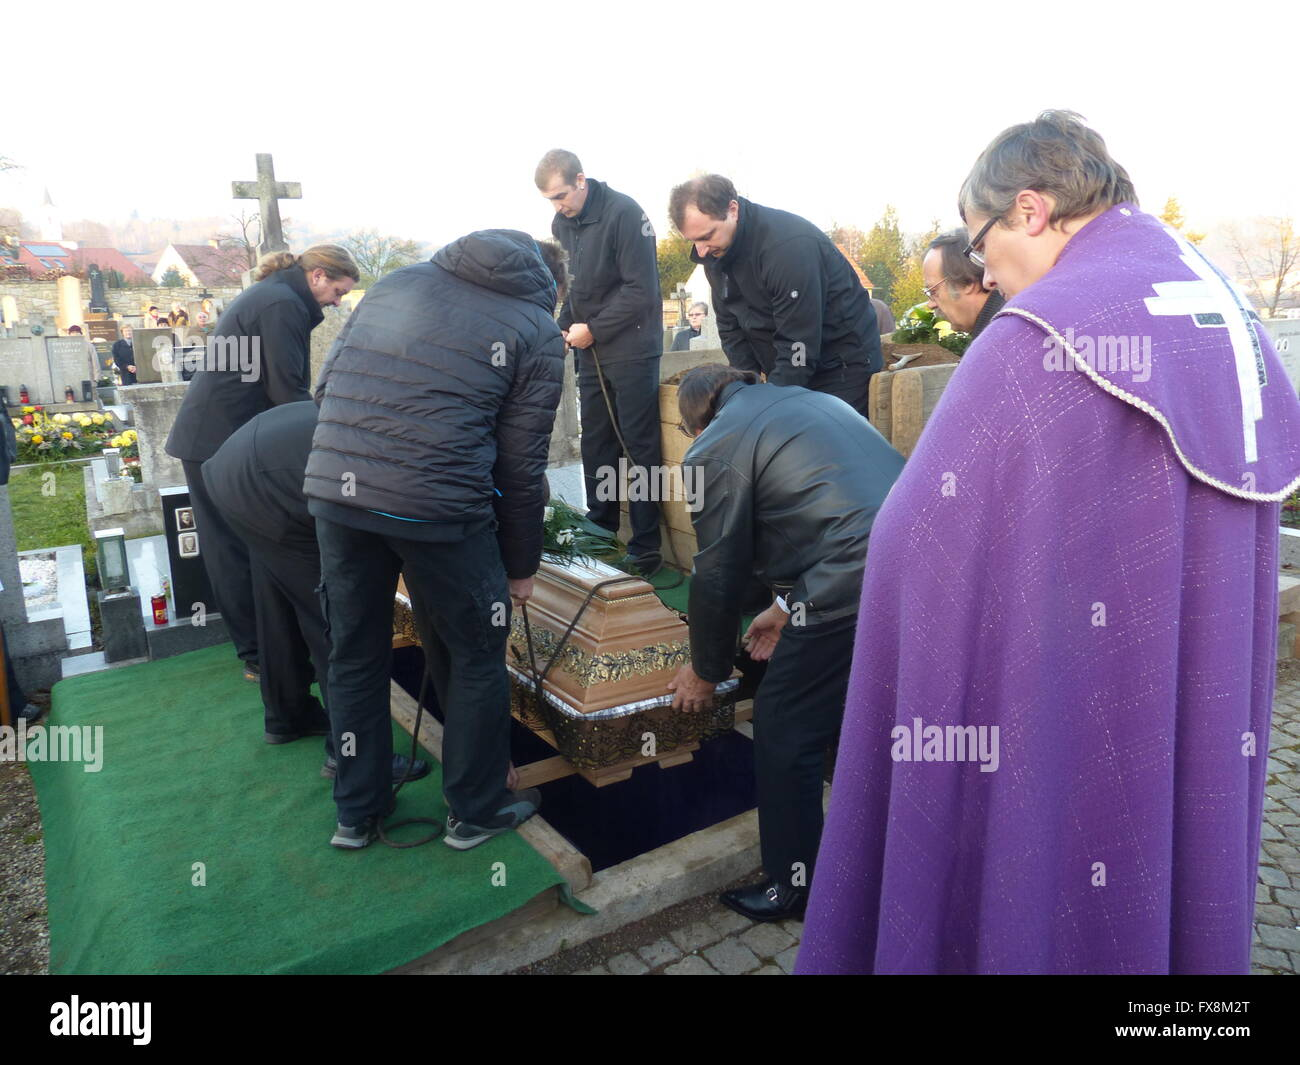 Lowering casket into grave at country funeral stock image